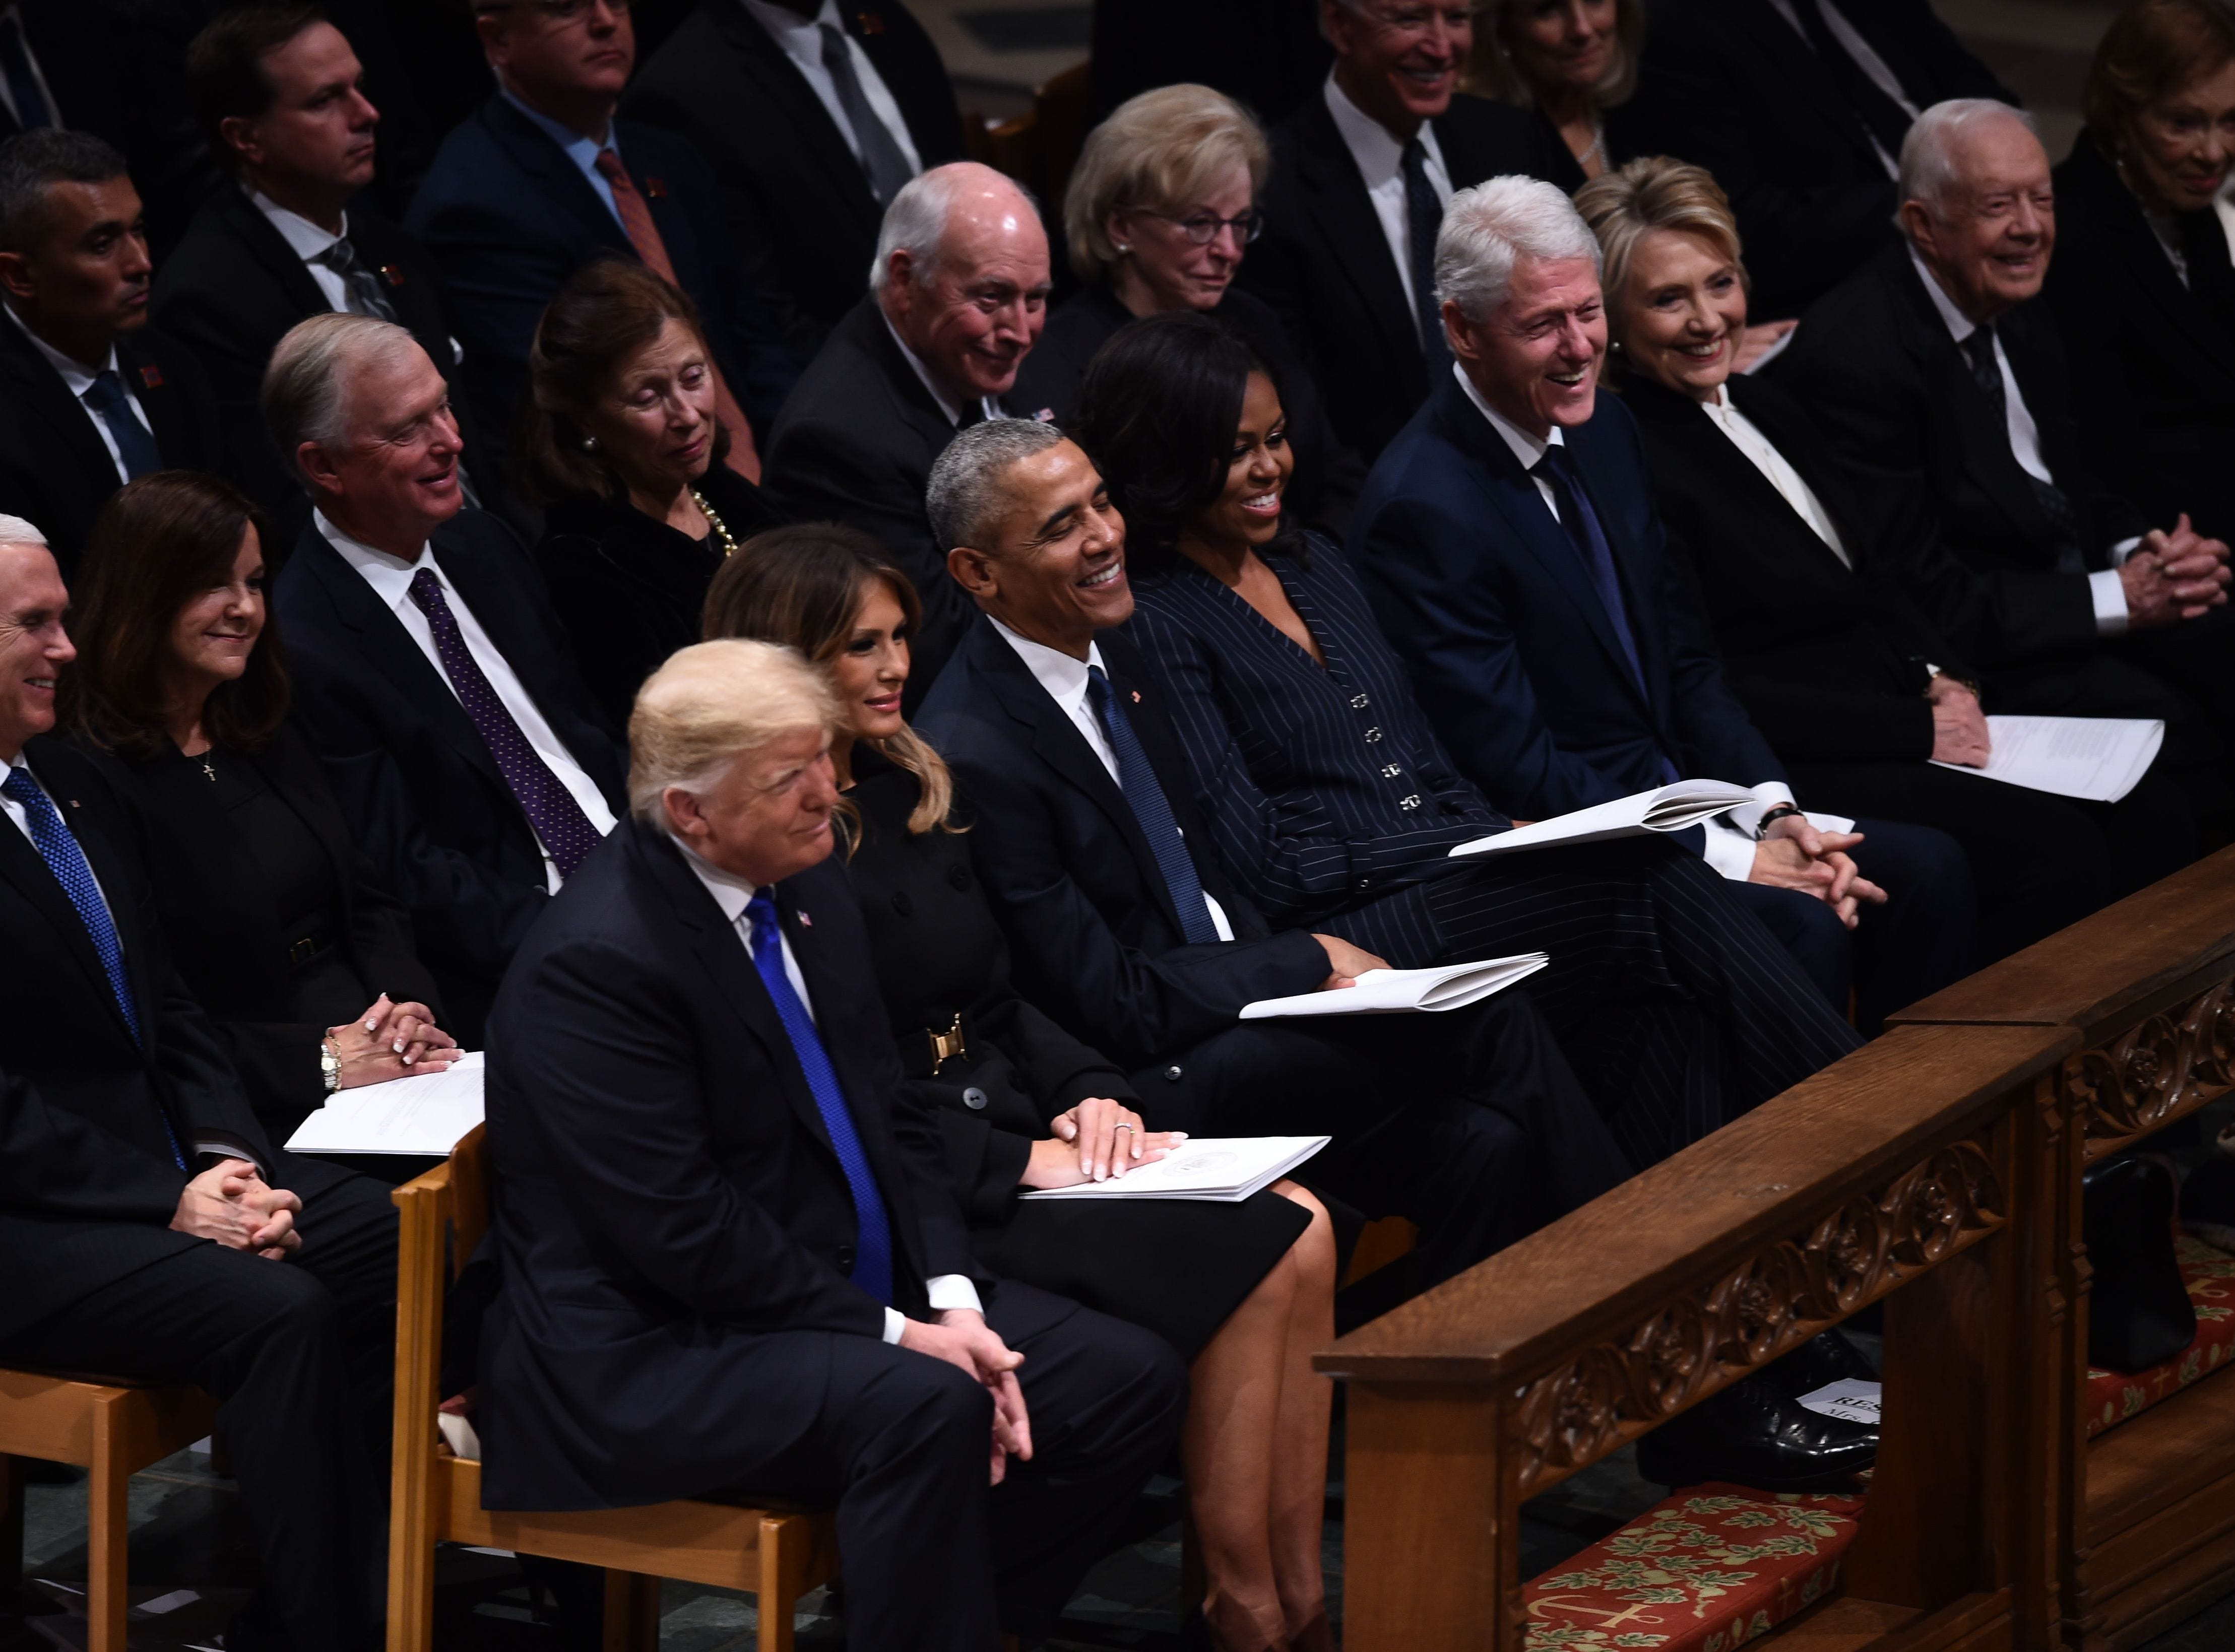 President Donald Trump, first lady Melania Trump, former President Barack Obama, former first lady Michelle Obama, former President Bill Clinton, former first lady Hillary Clinton, former President Jimmy Carter, and former first lady Rosalynn Carter smile during remarks at  the state funeral of former President George H.W. Bush. Behind them are Vice President Mike Pence and former vice presidents Dan Quayle, Dick Cheney, Joe Biden and their wives.